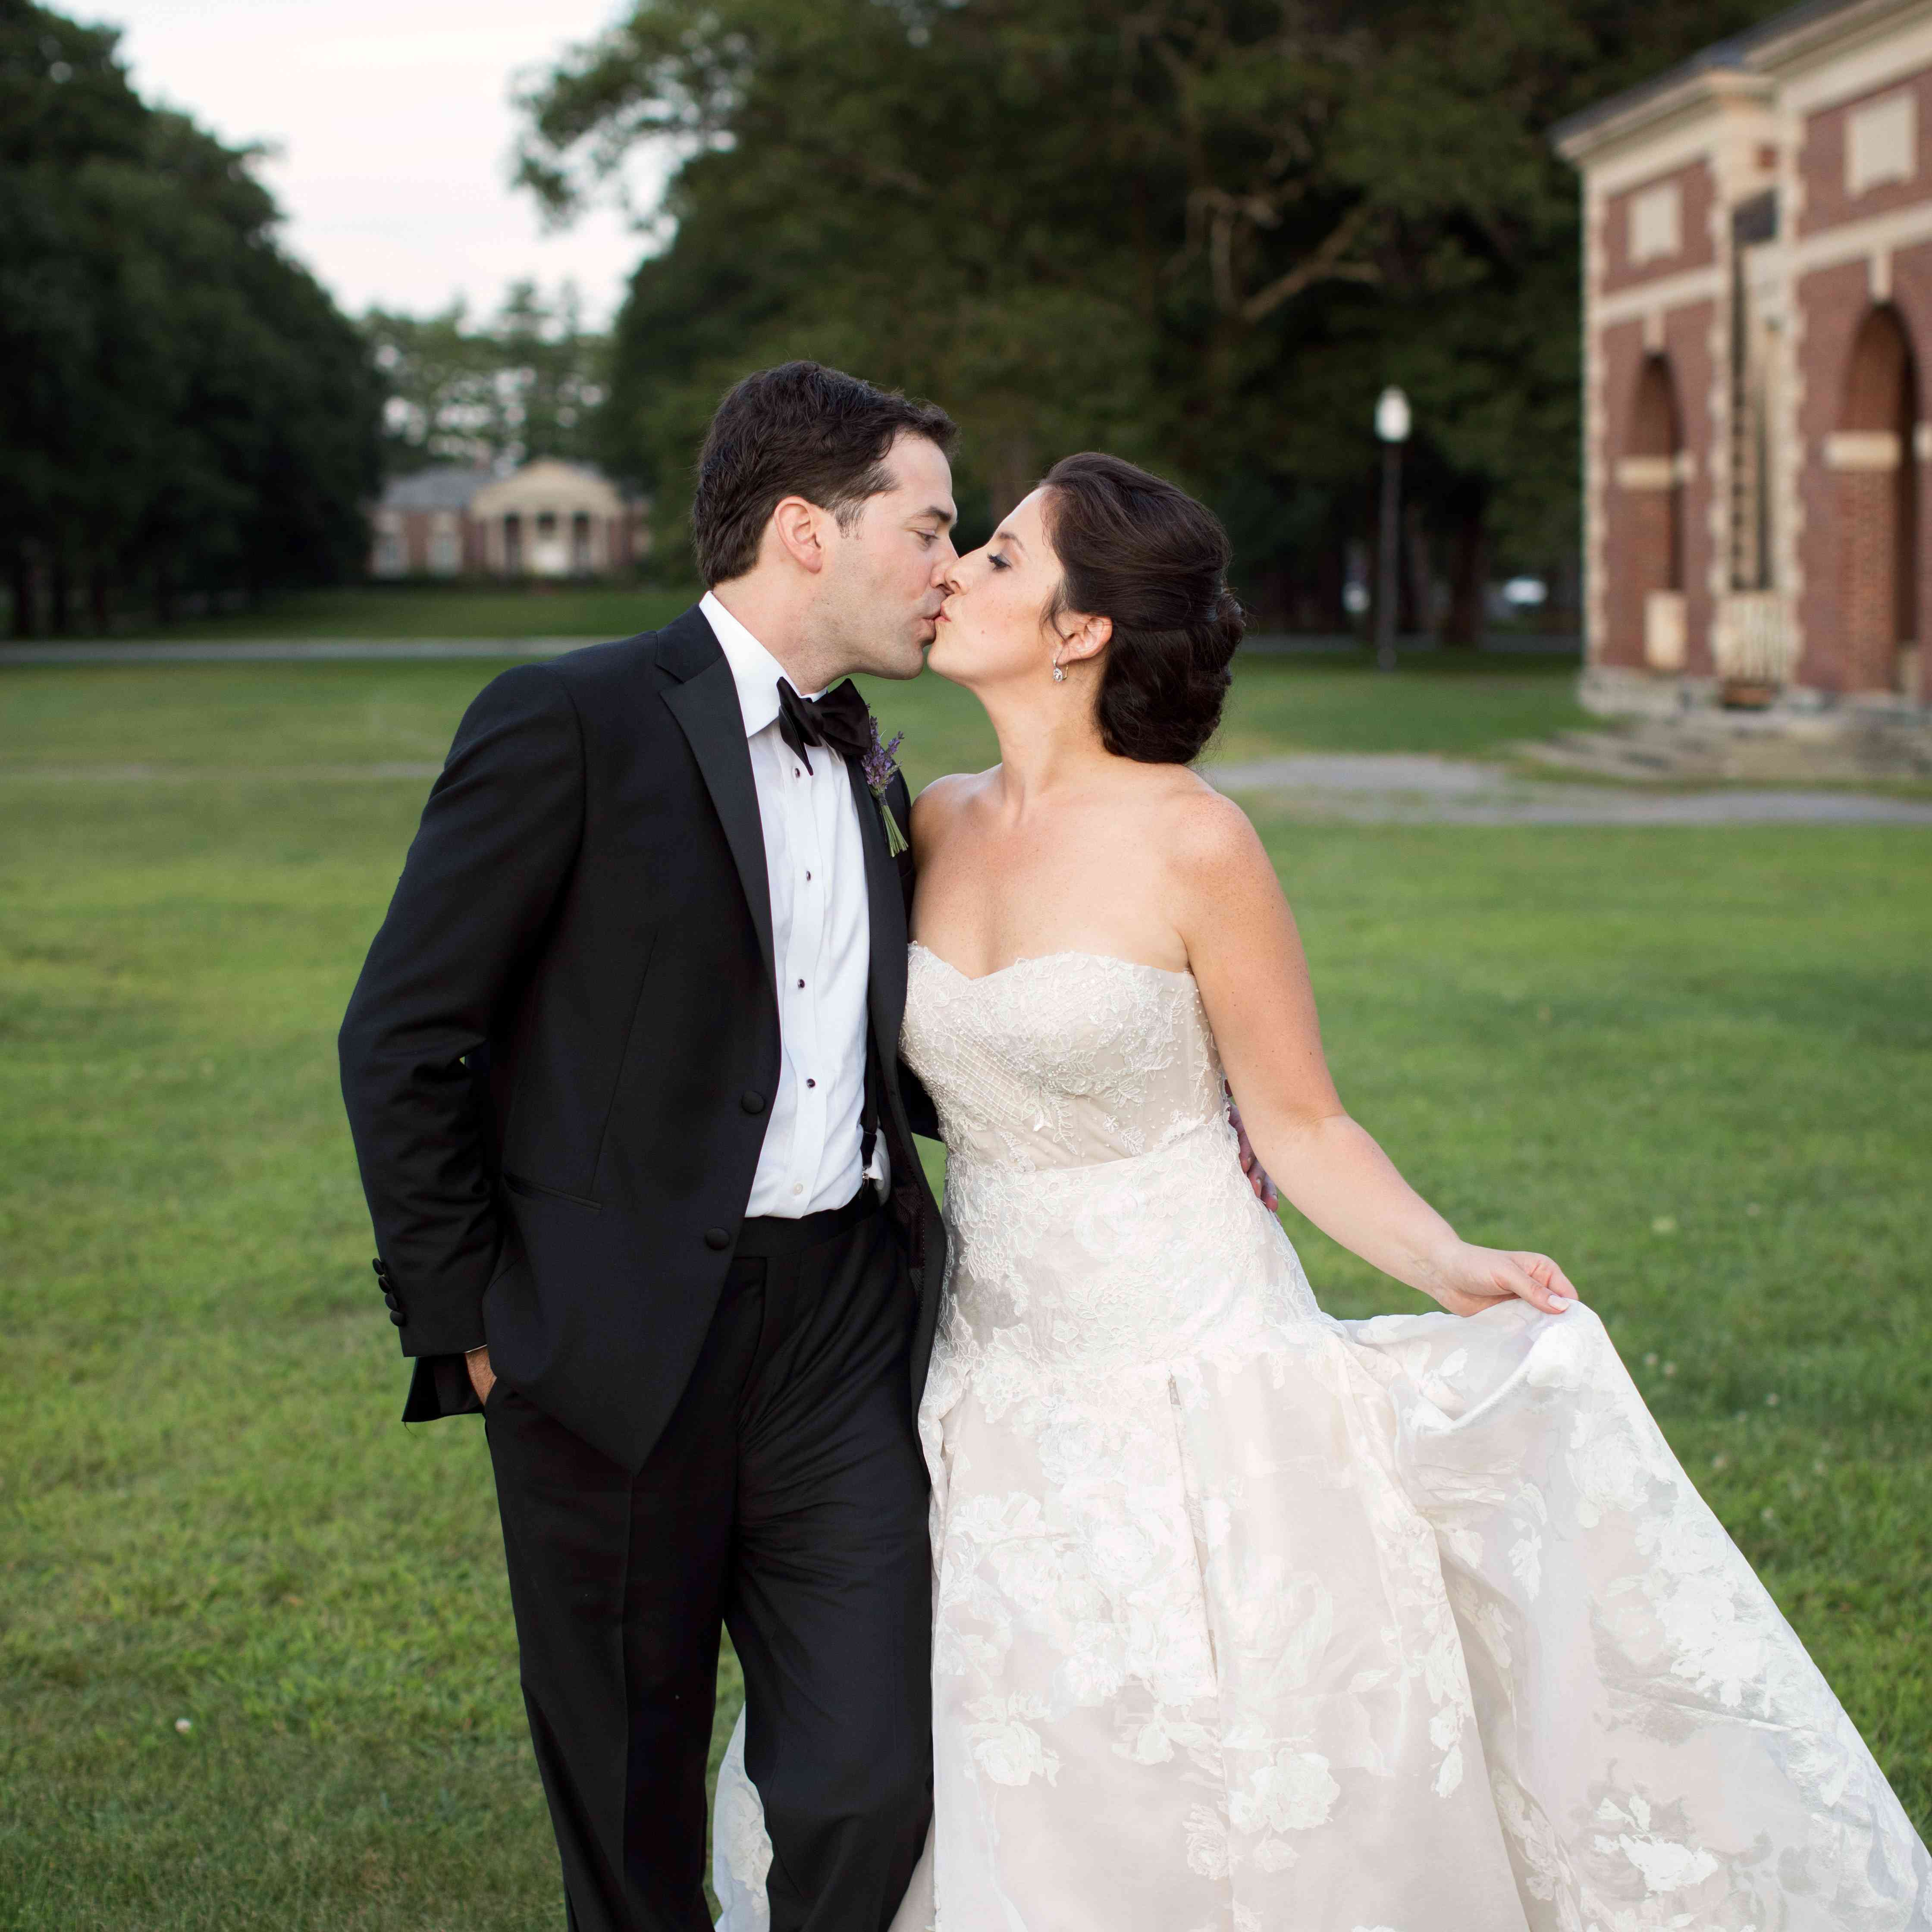 Congresswoman Elise Stefanik's Upstate New York Wedding